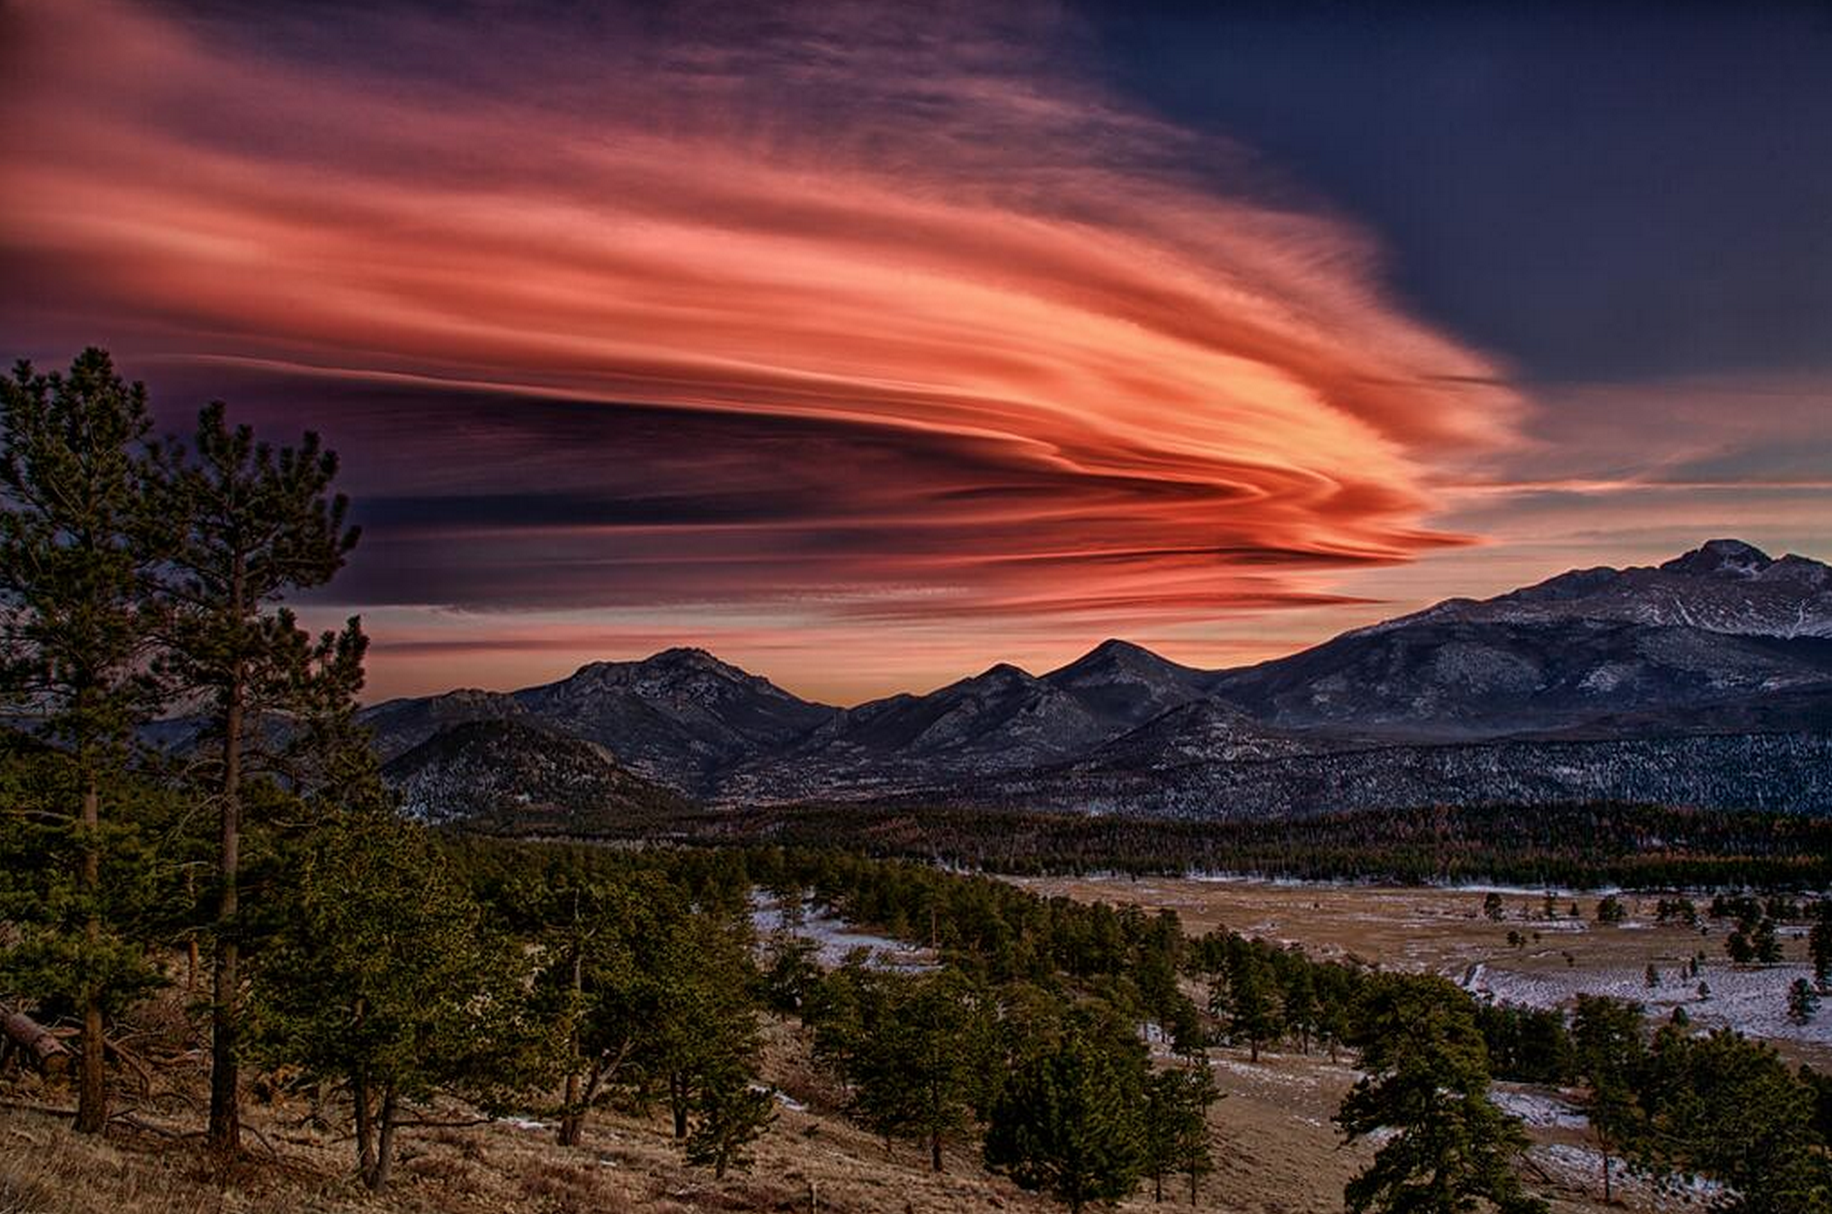 Too cool! Lenticular clouds over #Boulder #Longmont. Thx to @MrJAPBiology for the shot! #ColorfulCO #Colorado http://t.co/1E8KCR65ca